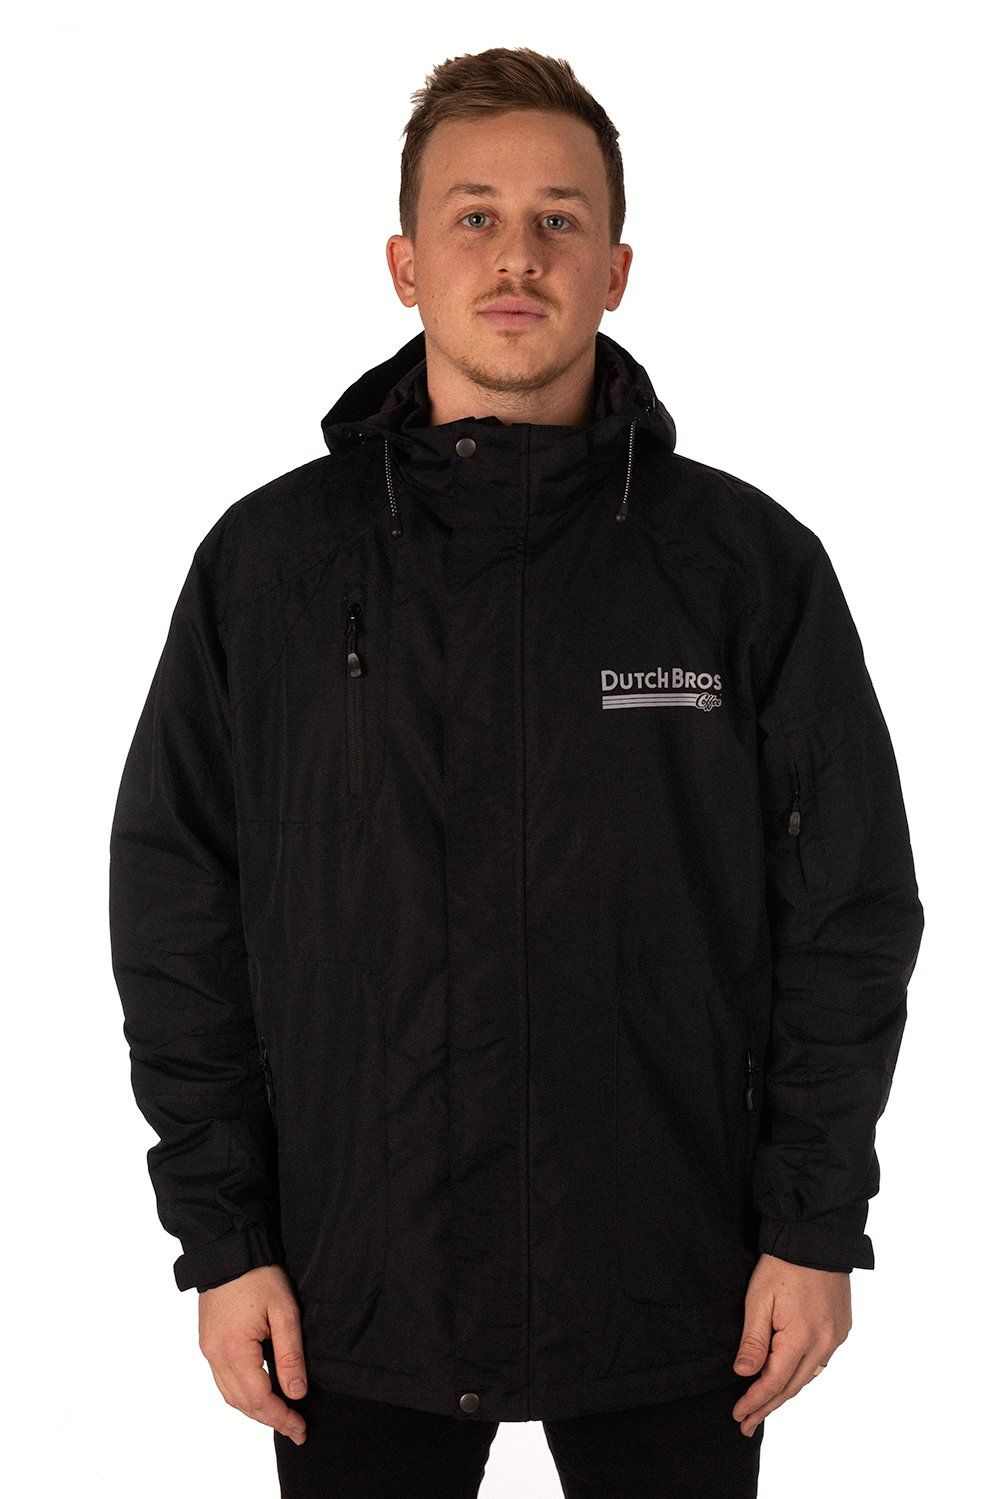 Dutch Bros Rain Jacket - Black #dutchbros